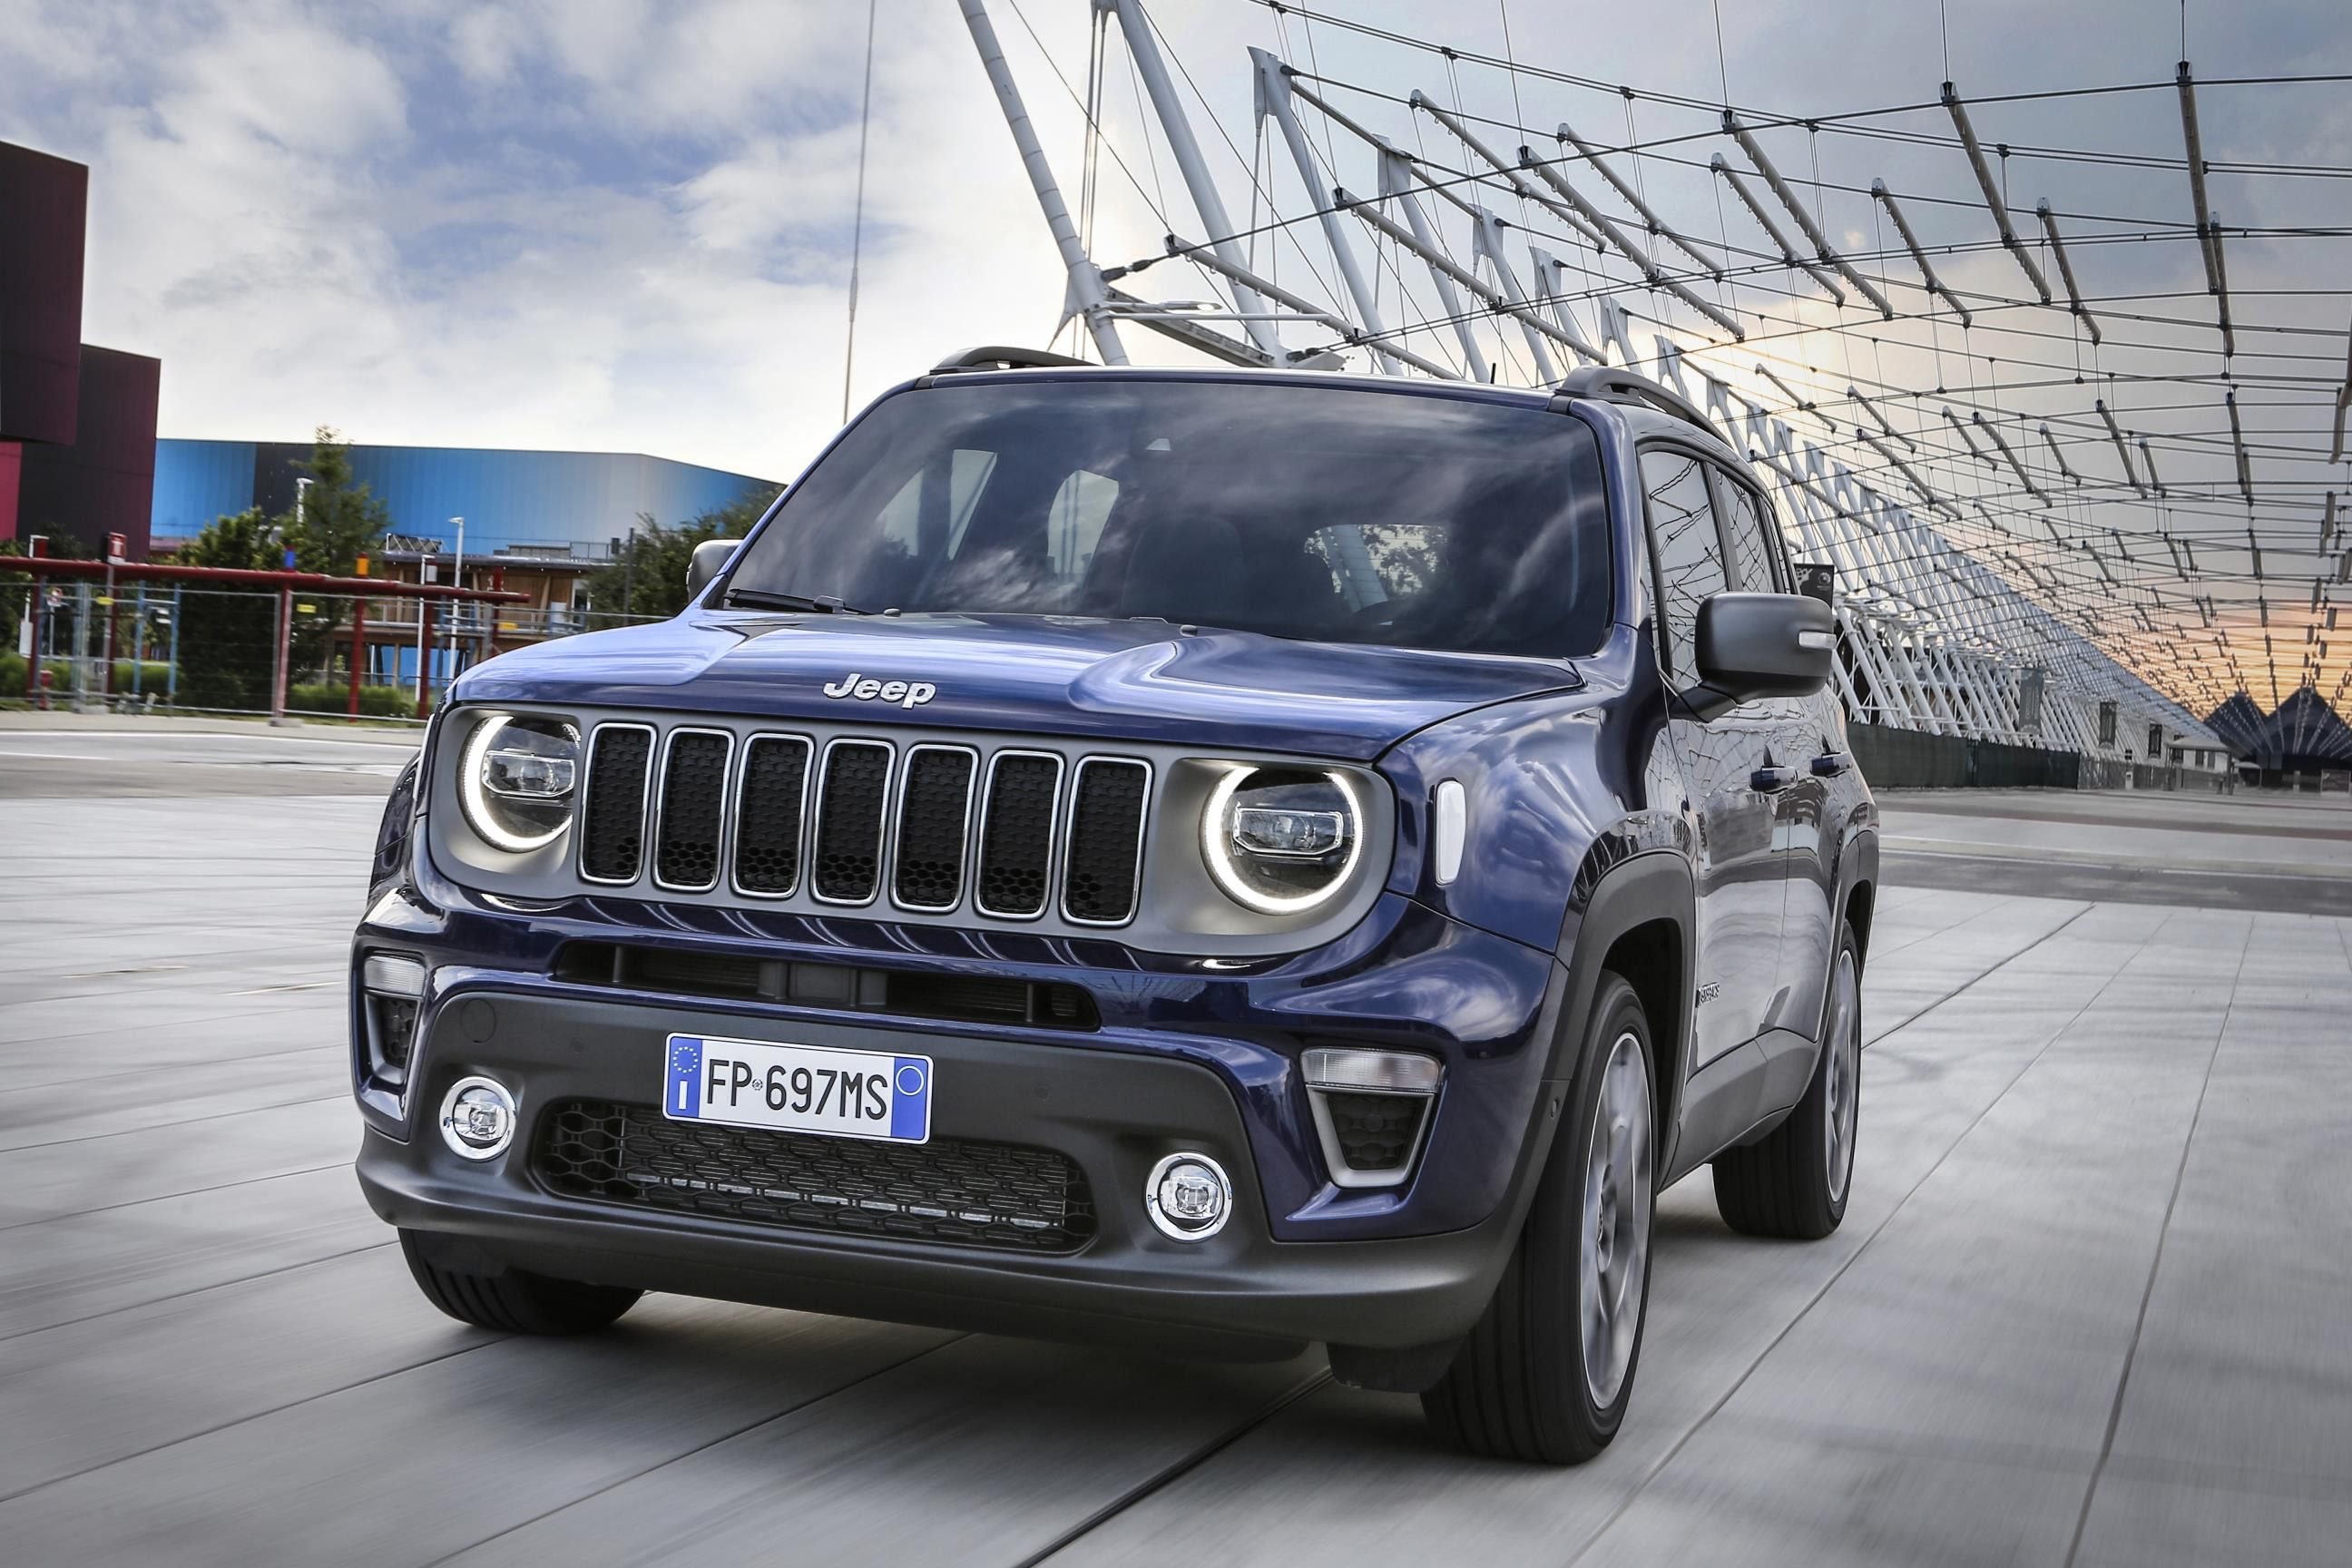 Blue Jeep Renegade parked with sculptural building behind it